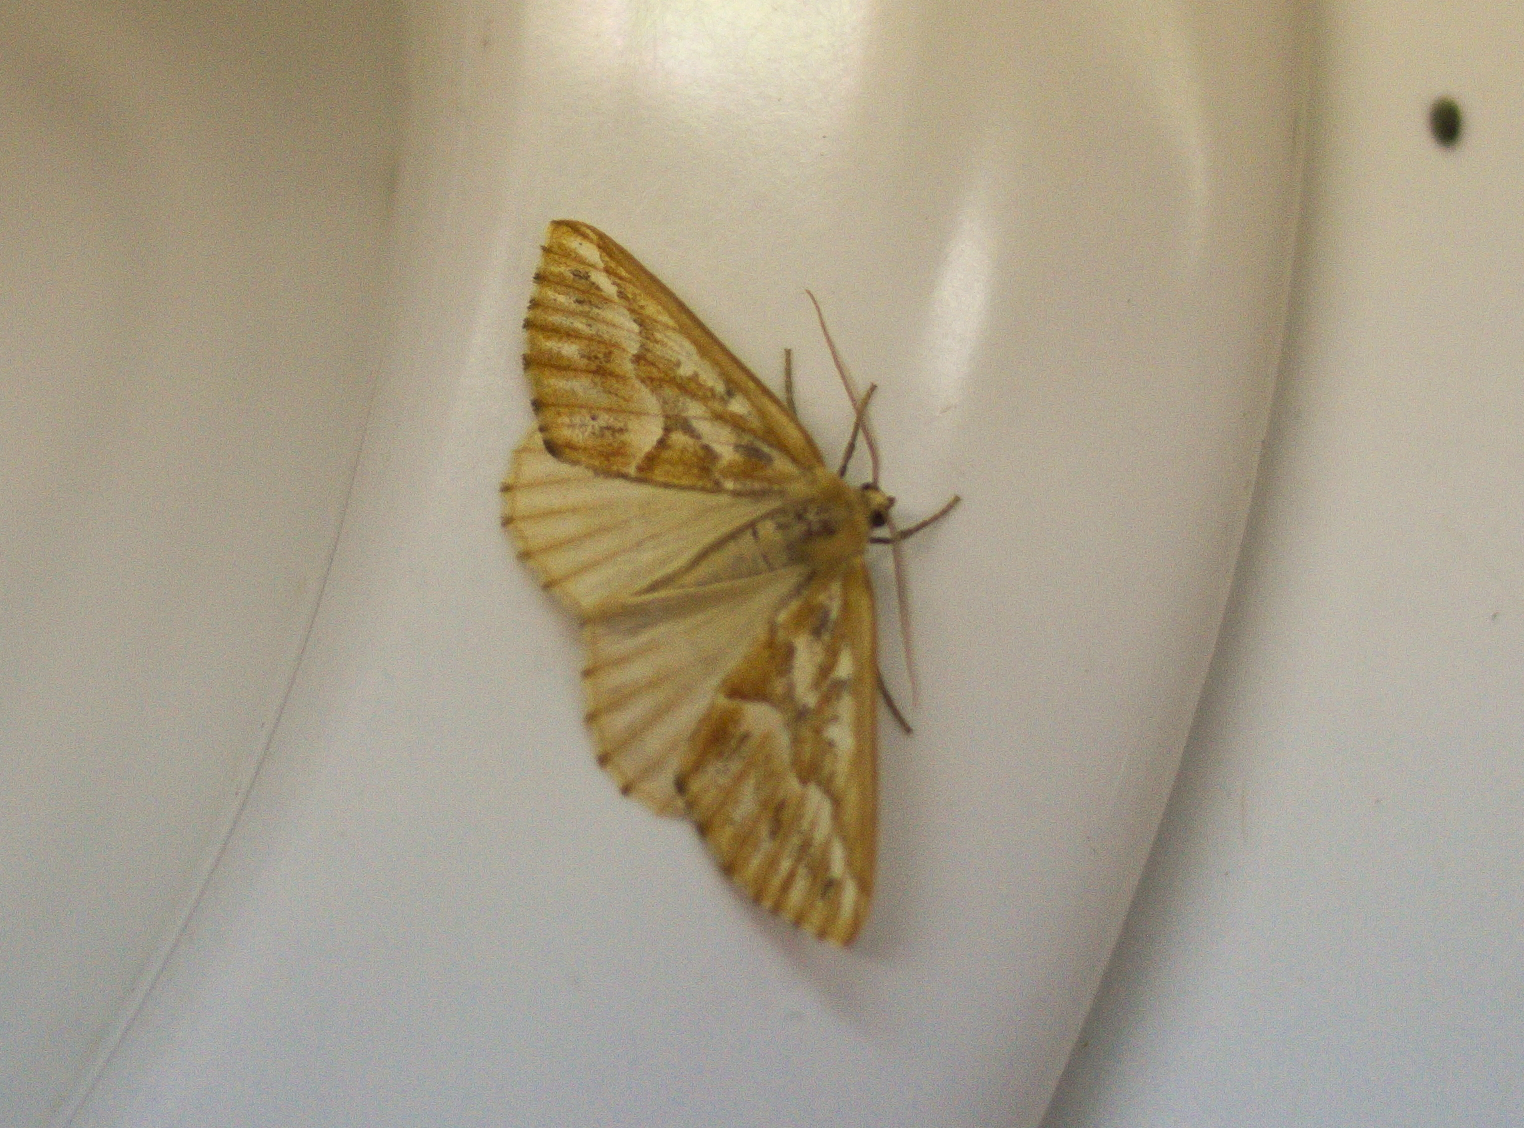 Northern Pine Looper moth, on sink edge